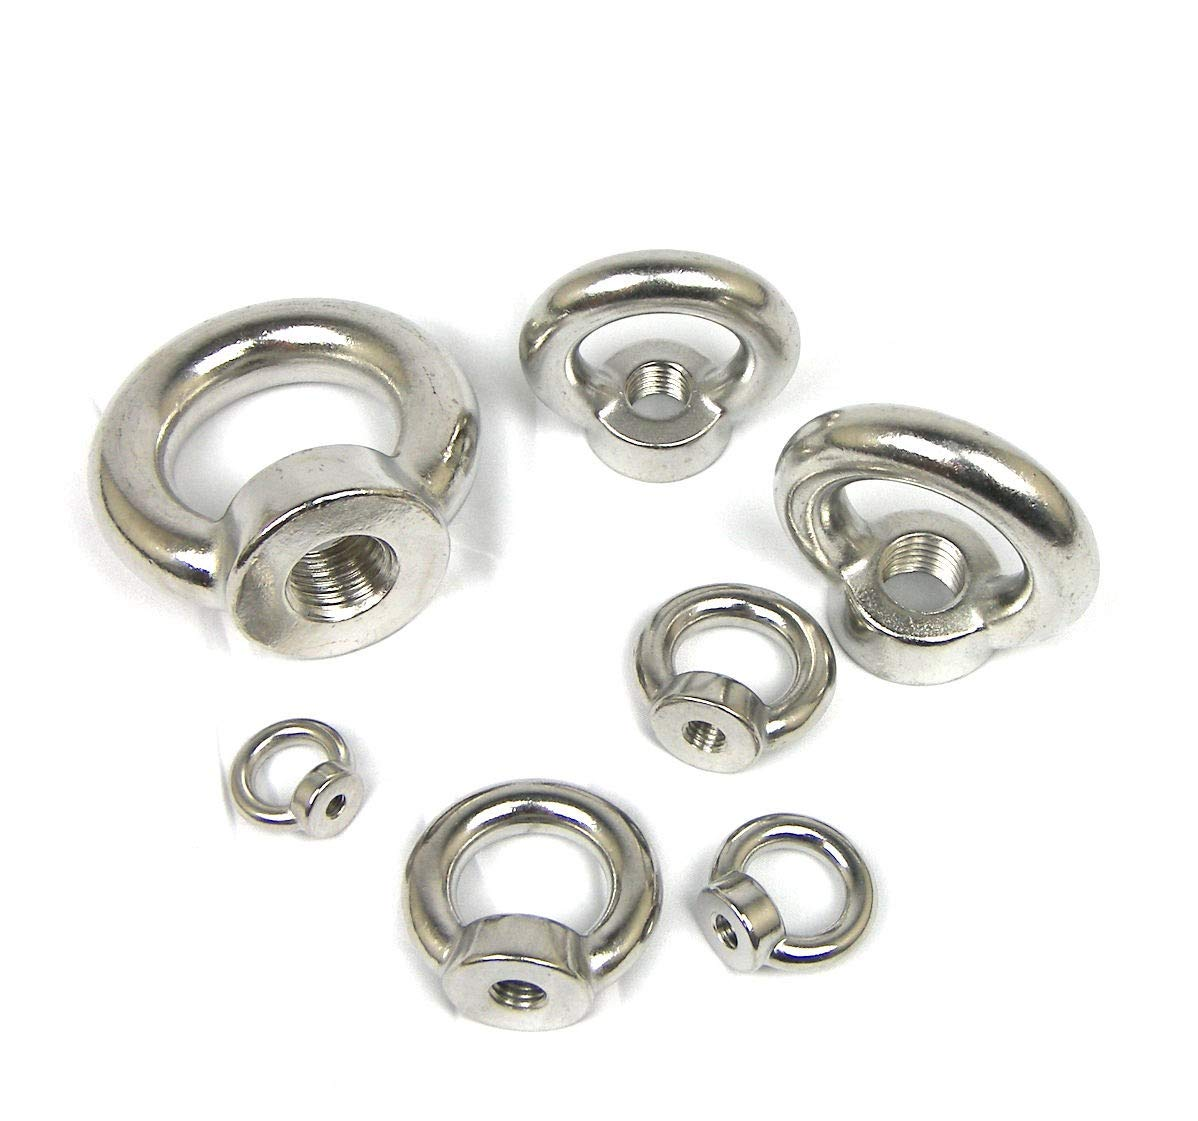 Stainless Steel T316 Din582 Lifting Eye Nut - 3/4'' (2pc Set)